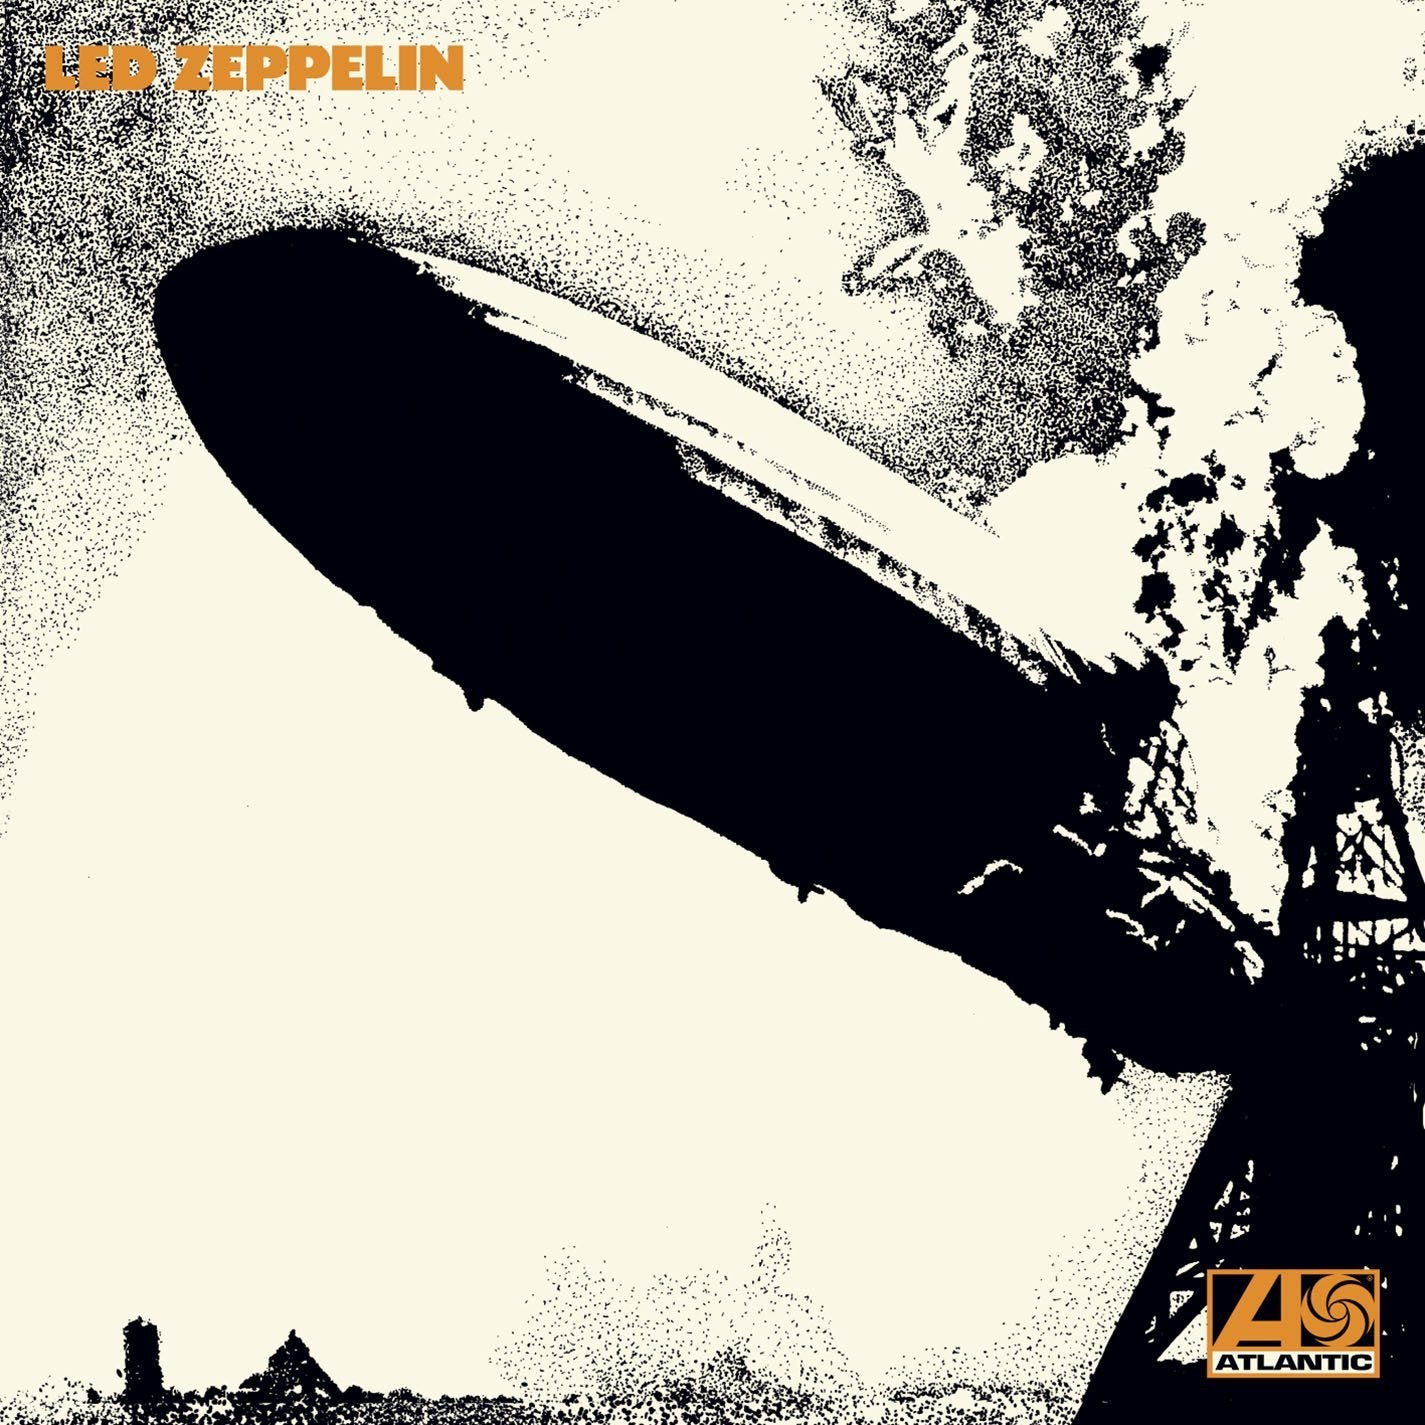 LED ZEPPELIN (REMASTERED) - Vinyl Sound